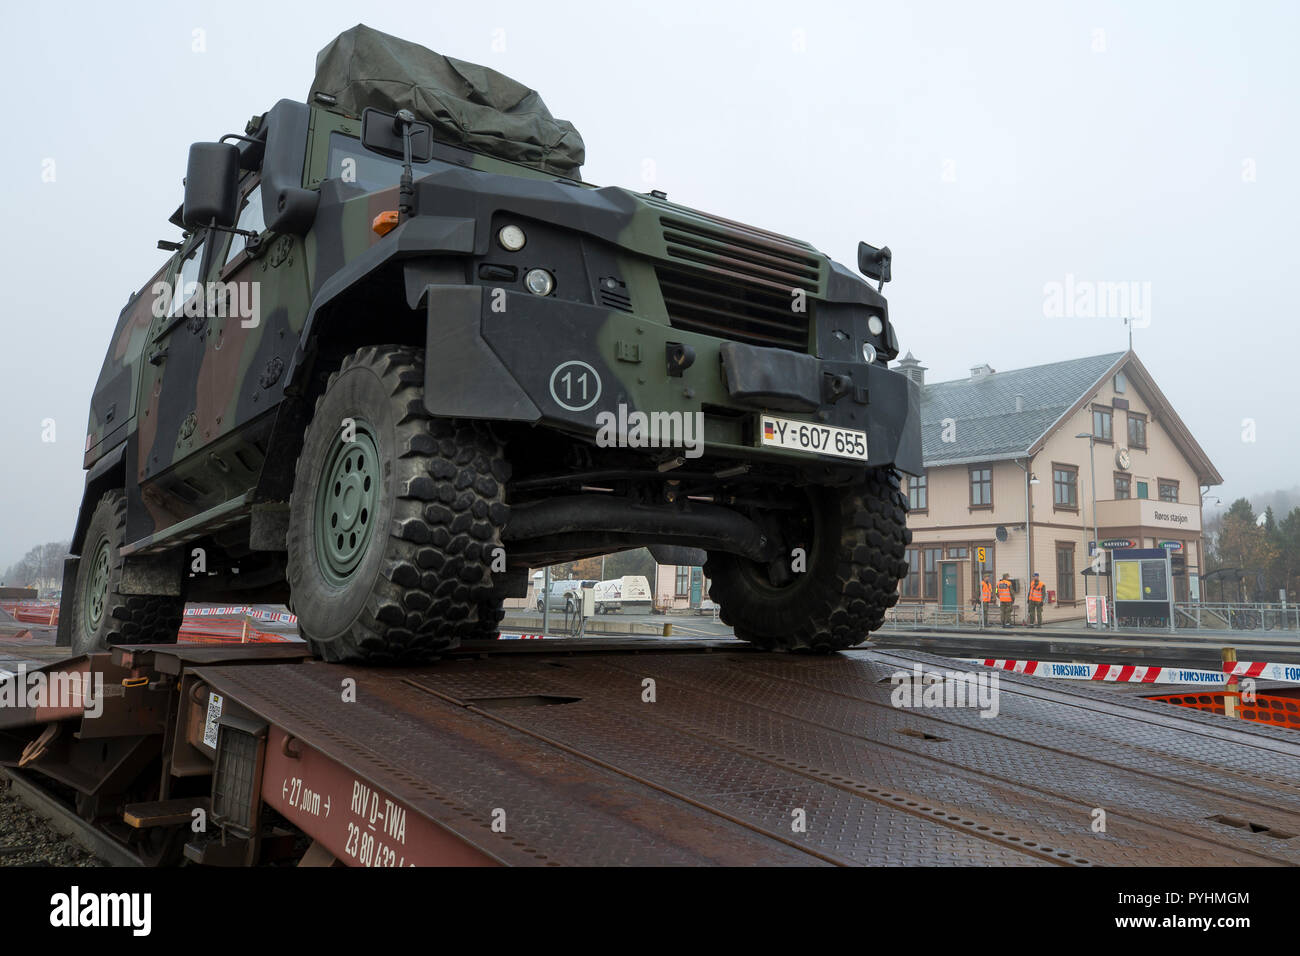 After Rail Transport From Germany To Norway The Mowag Eagle Wheeled Armored Vehicle Of The German